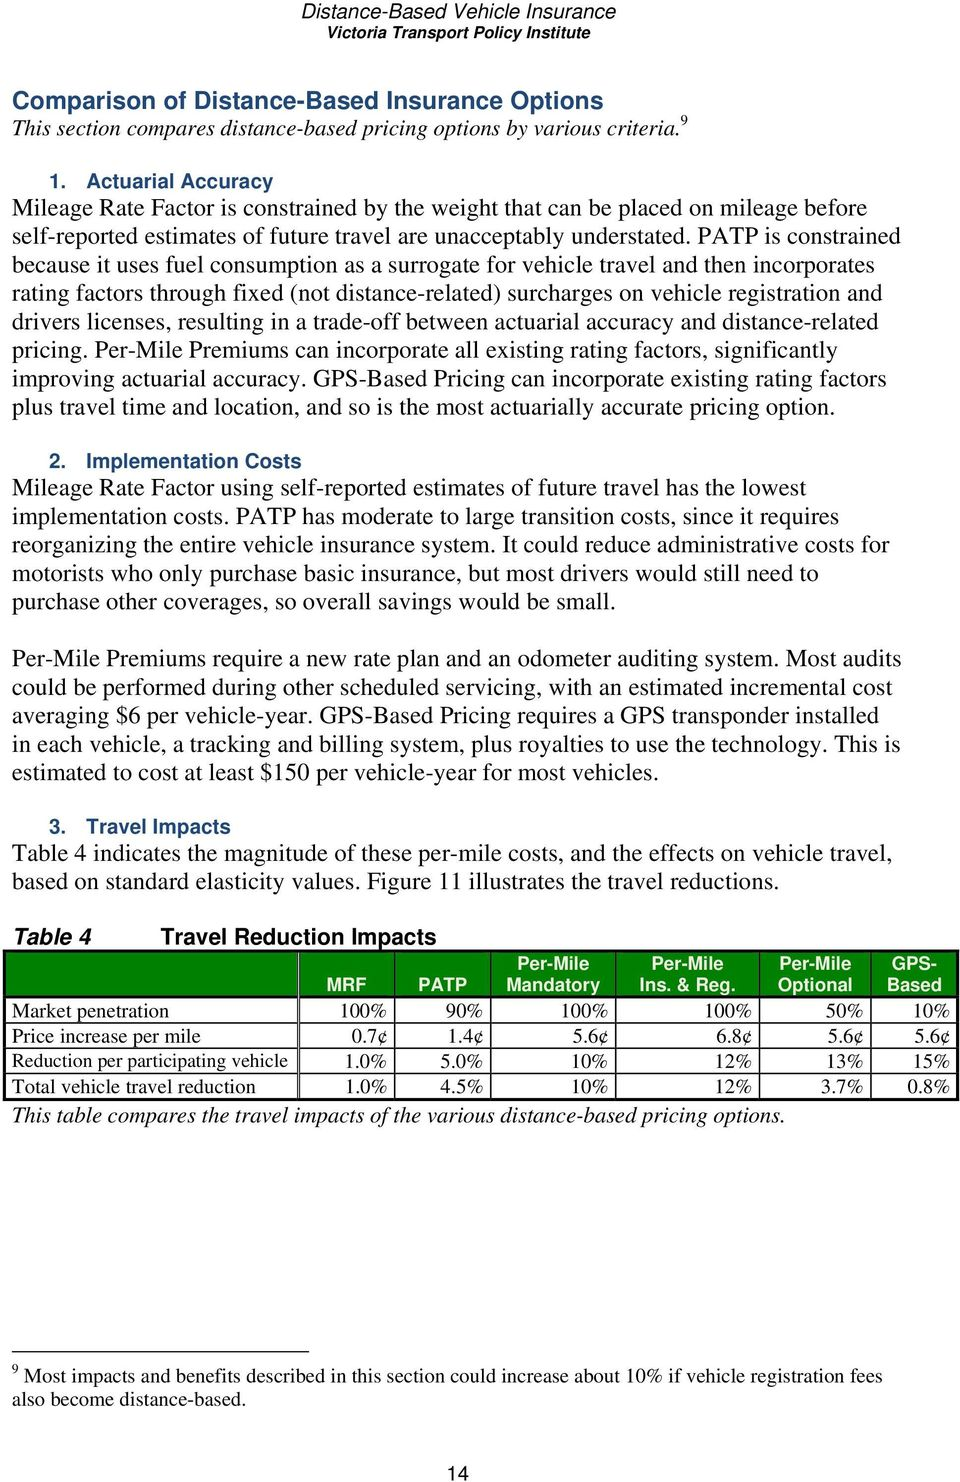 PATP is constrained because it uses fuel consumption as a surrogate for vehicle travel and then incorporates rating factors through fixed (not distance-related) surcharges on vehicle registration and